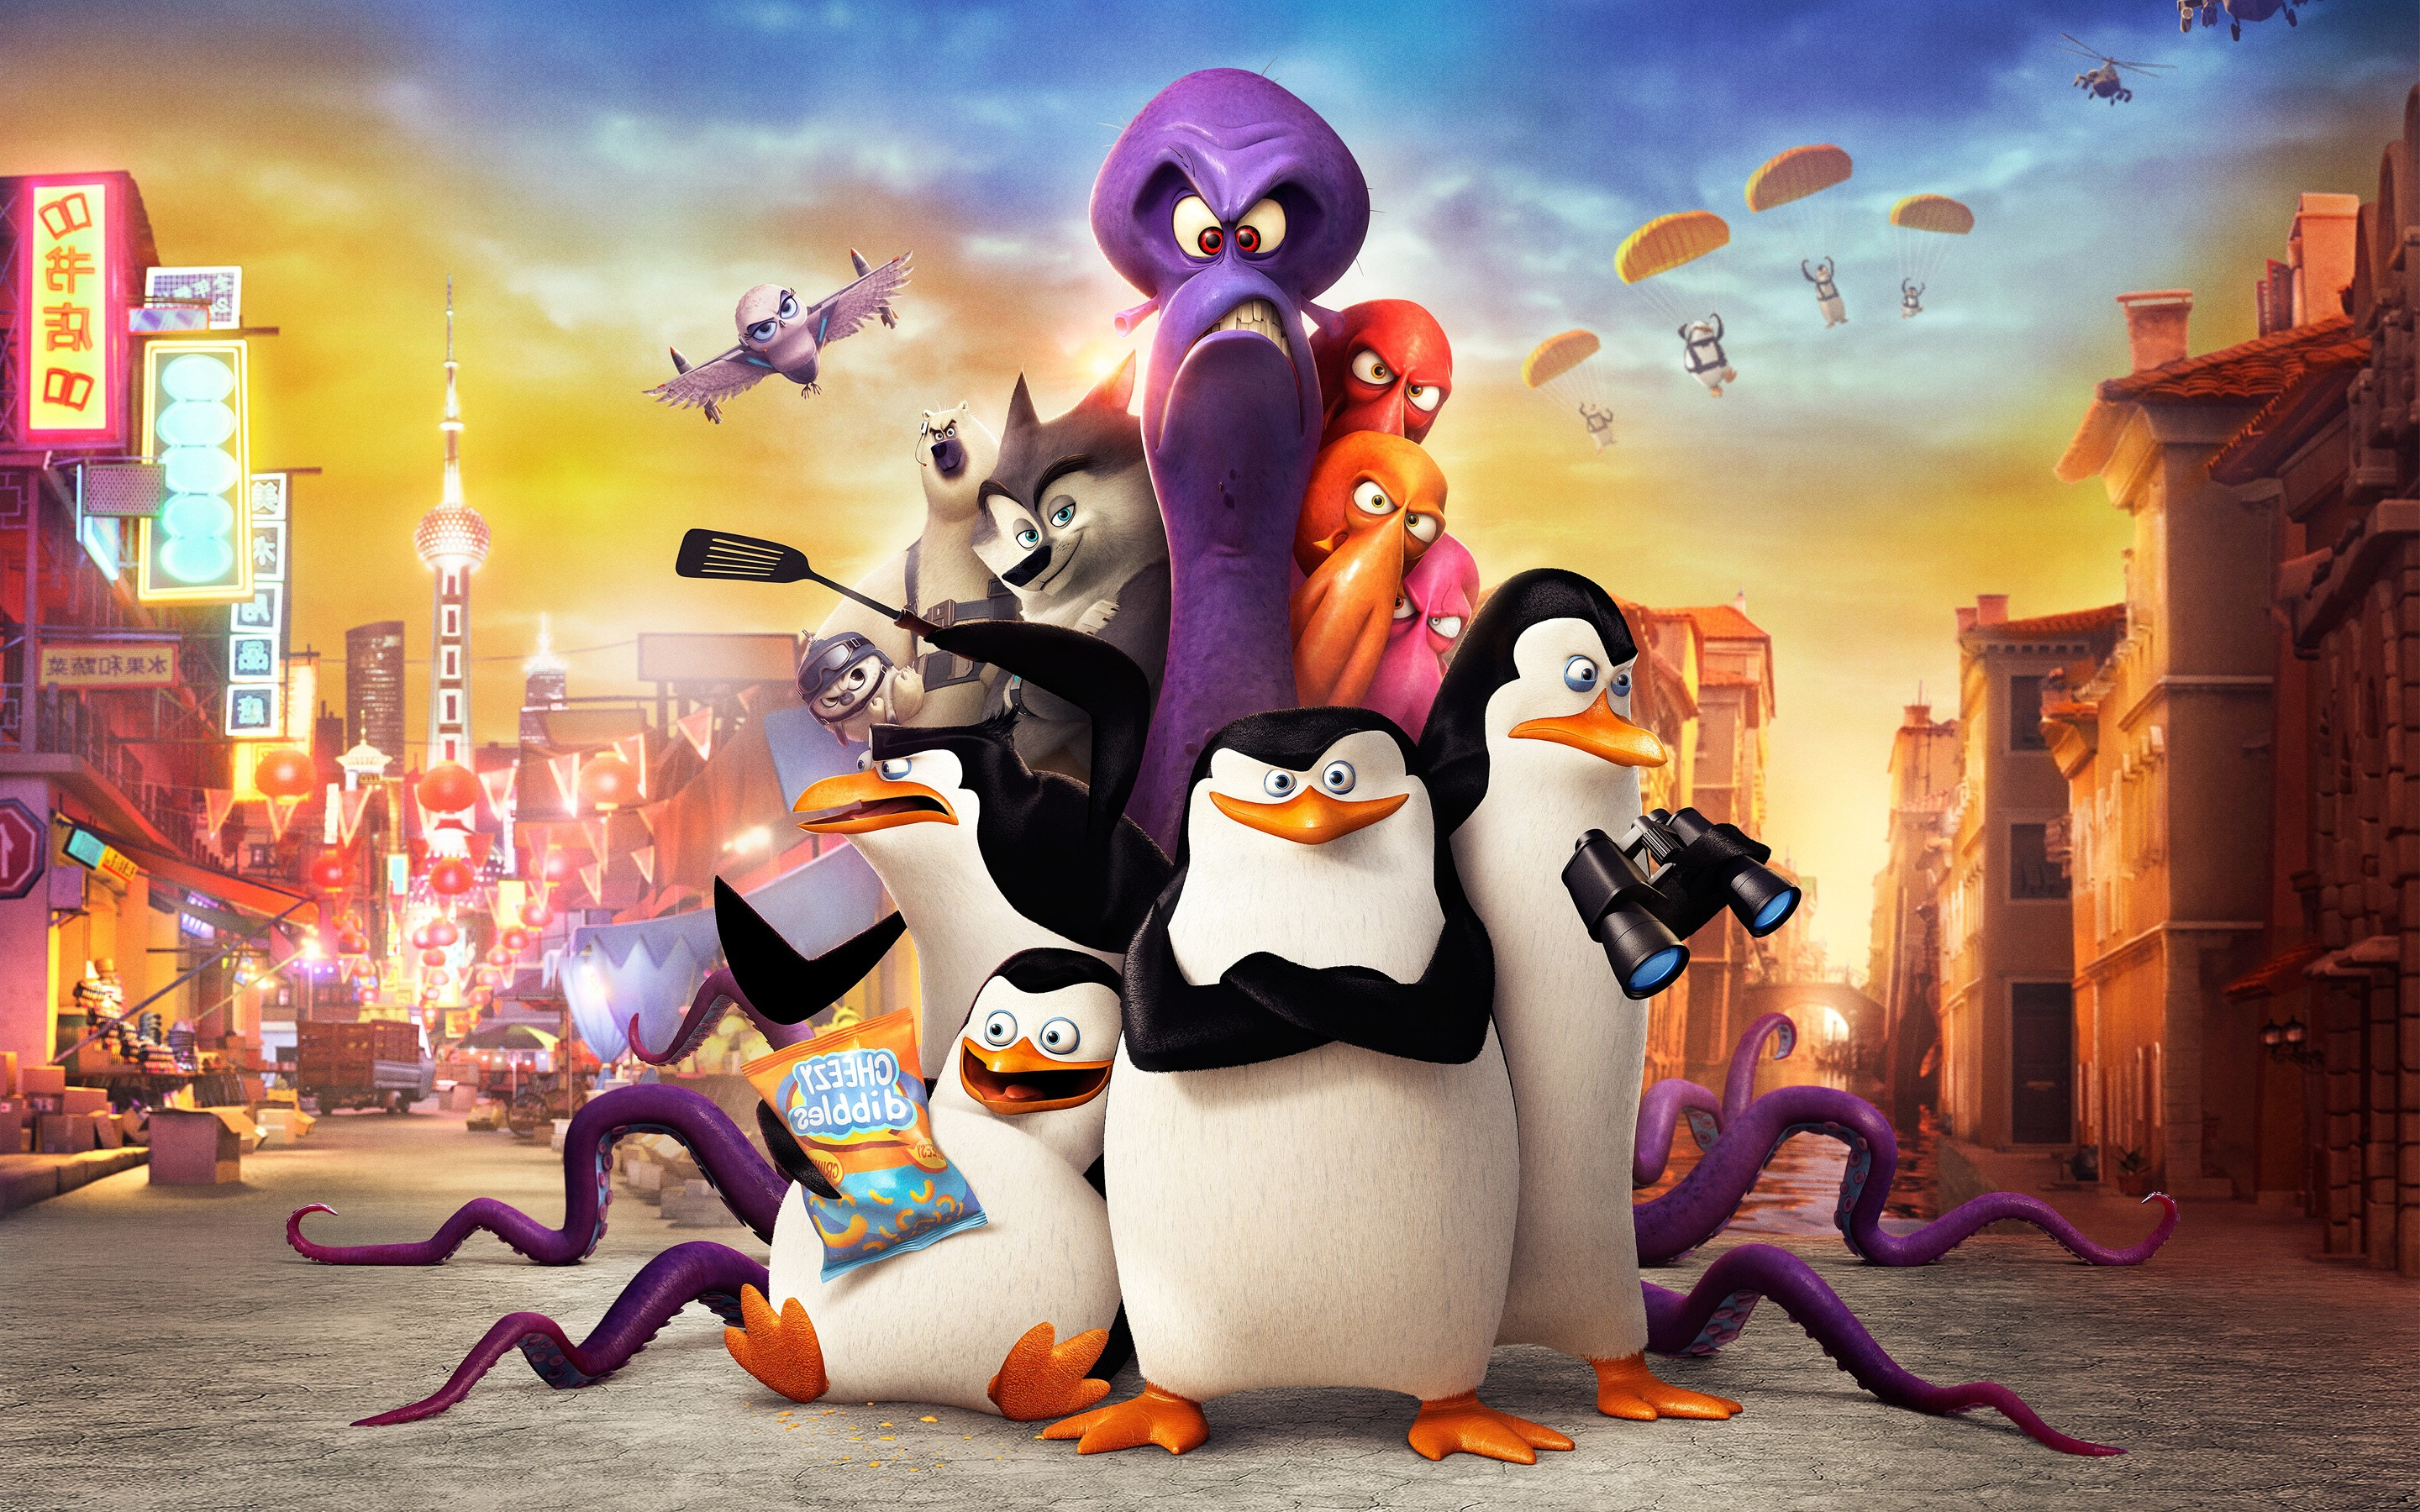 penguins of madagascar movie, hd movies, 4k wallpapers, images